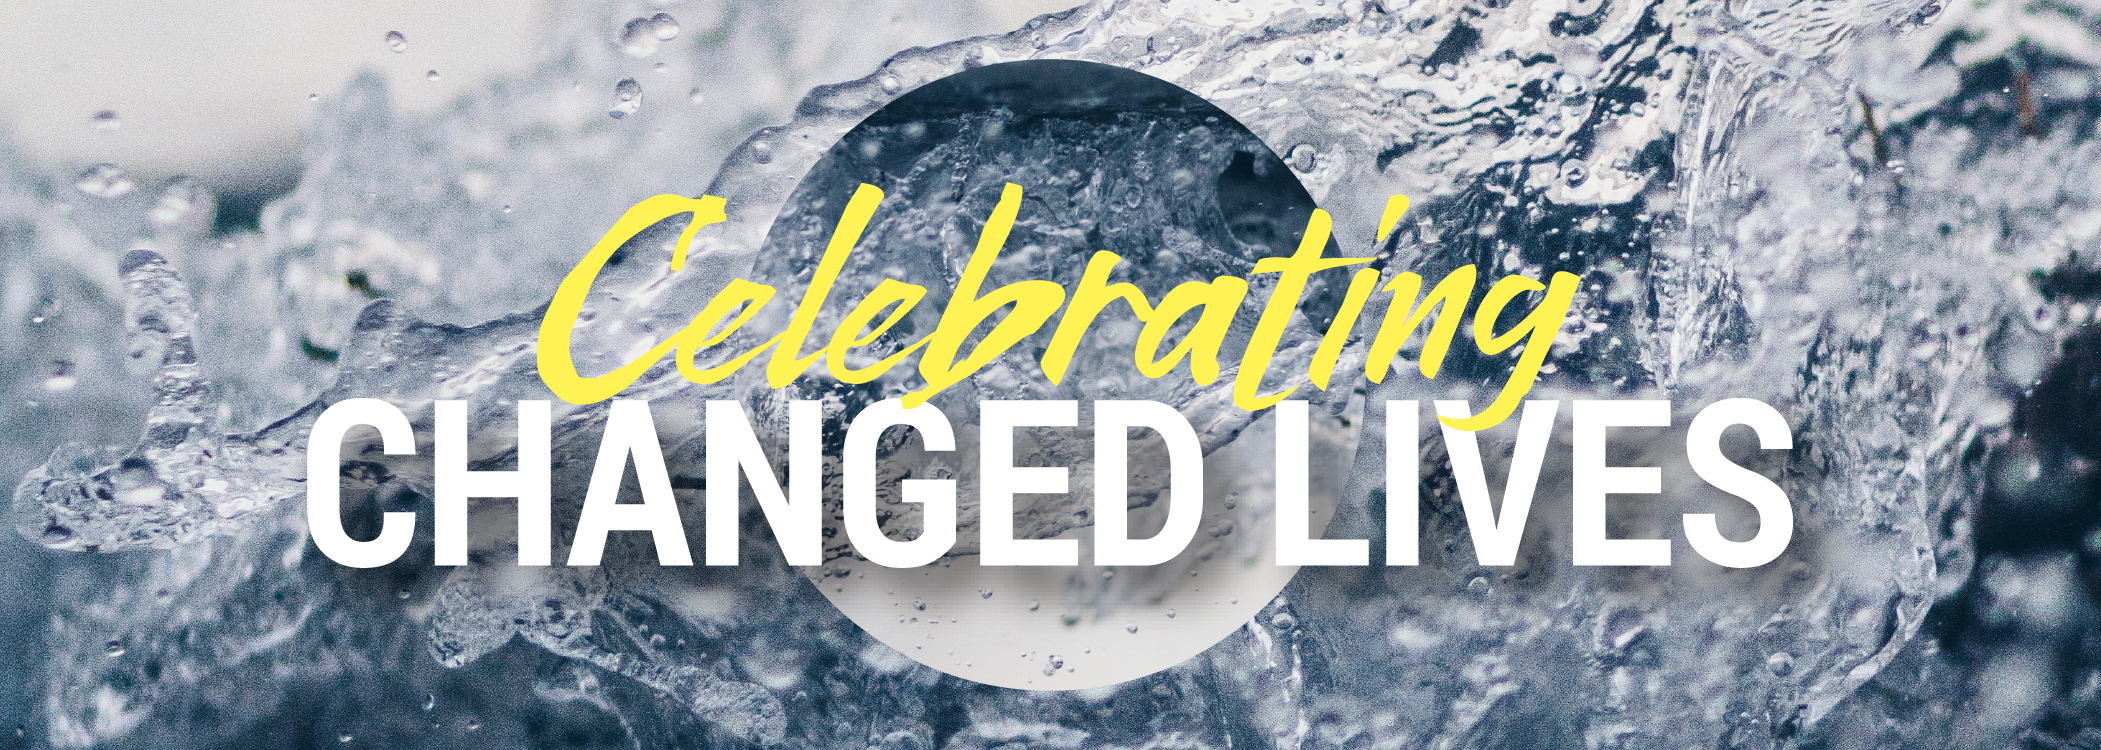 Celebrating Changed Lives BANNER.png